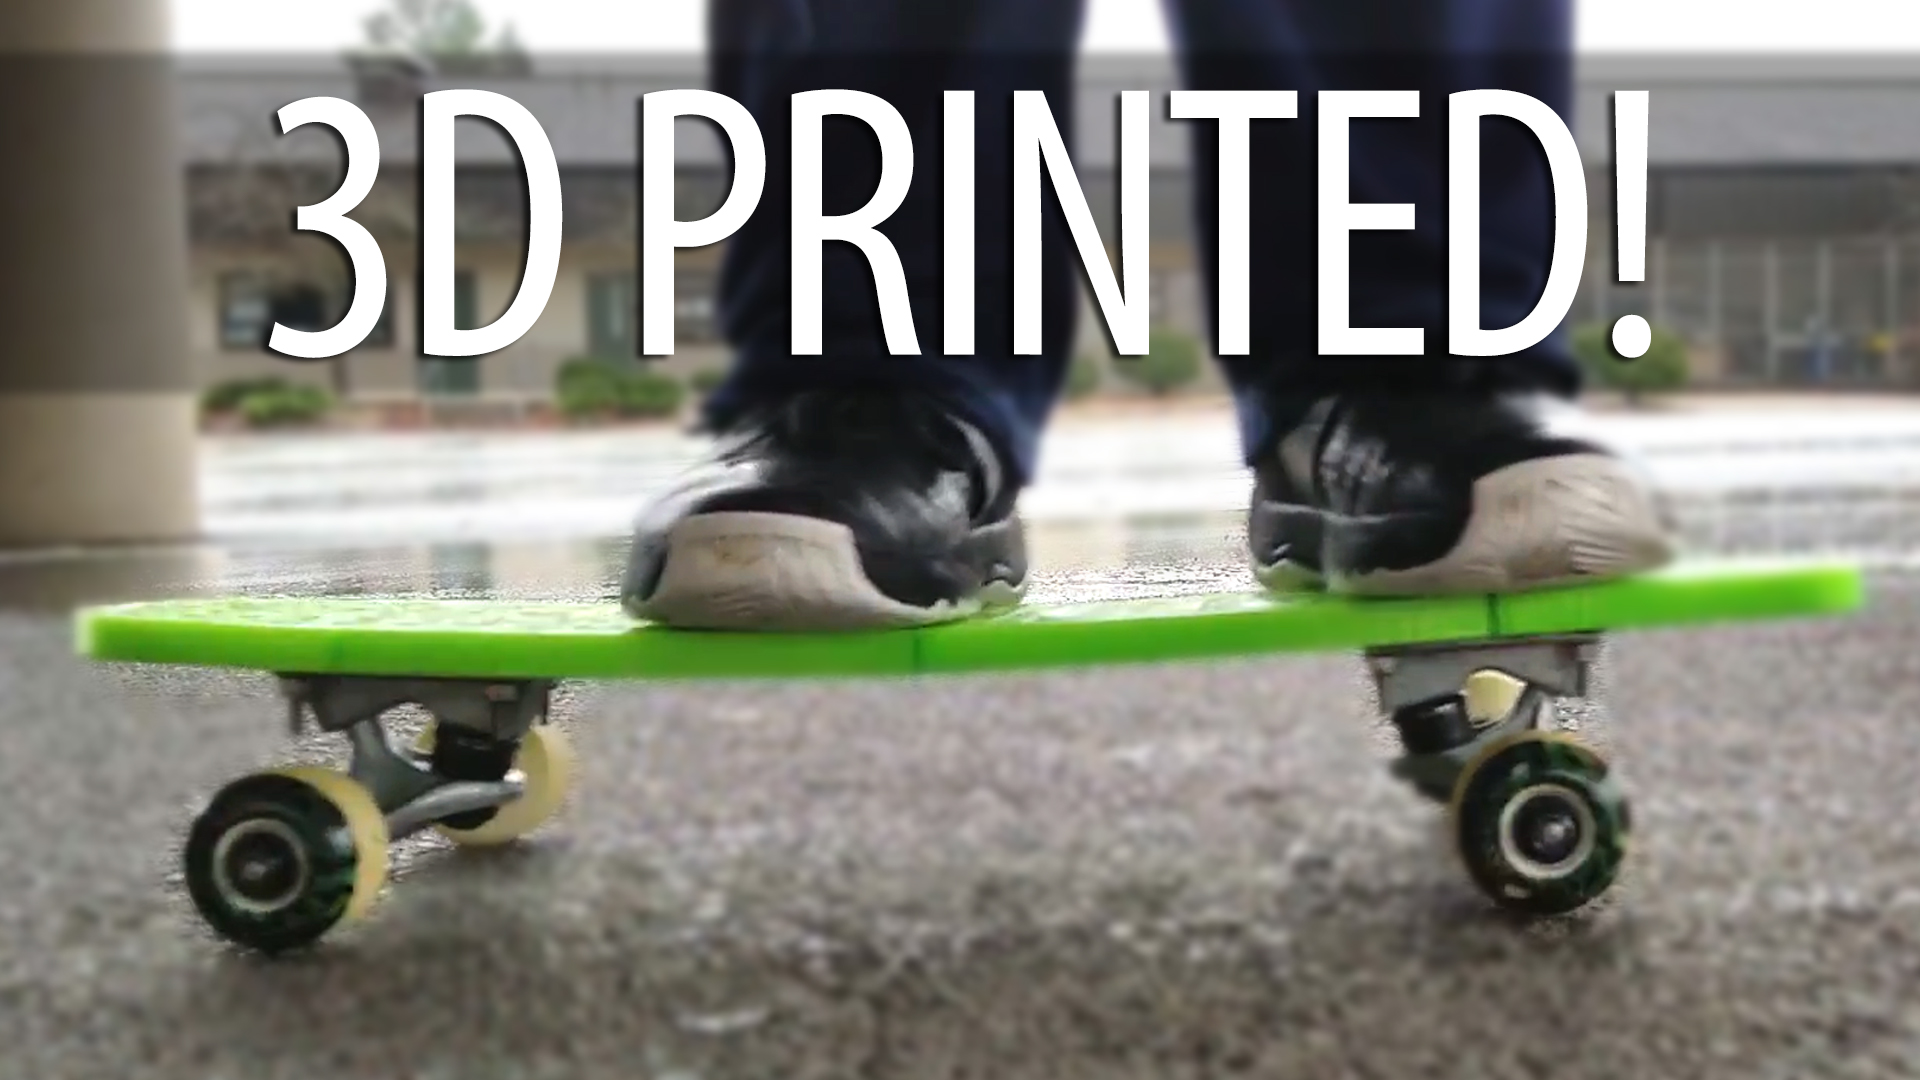 Assembling & Testing a 3D Printed Skateboard. Does It Work. Yes. Sort Of. 3D Printing Cool Stuff!